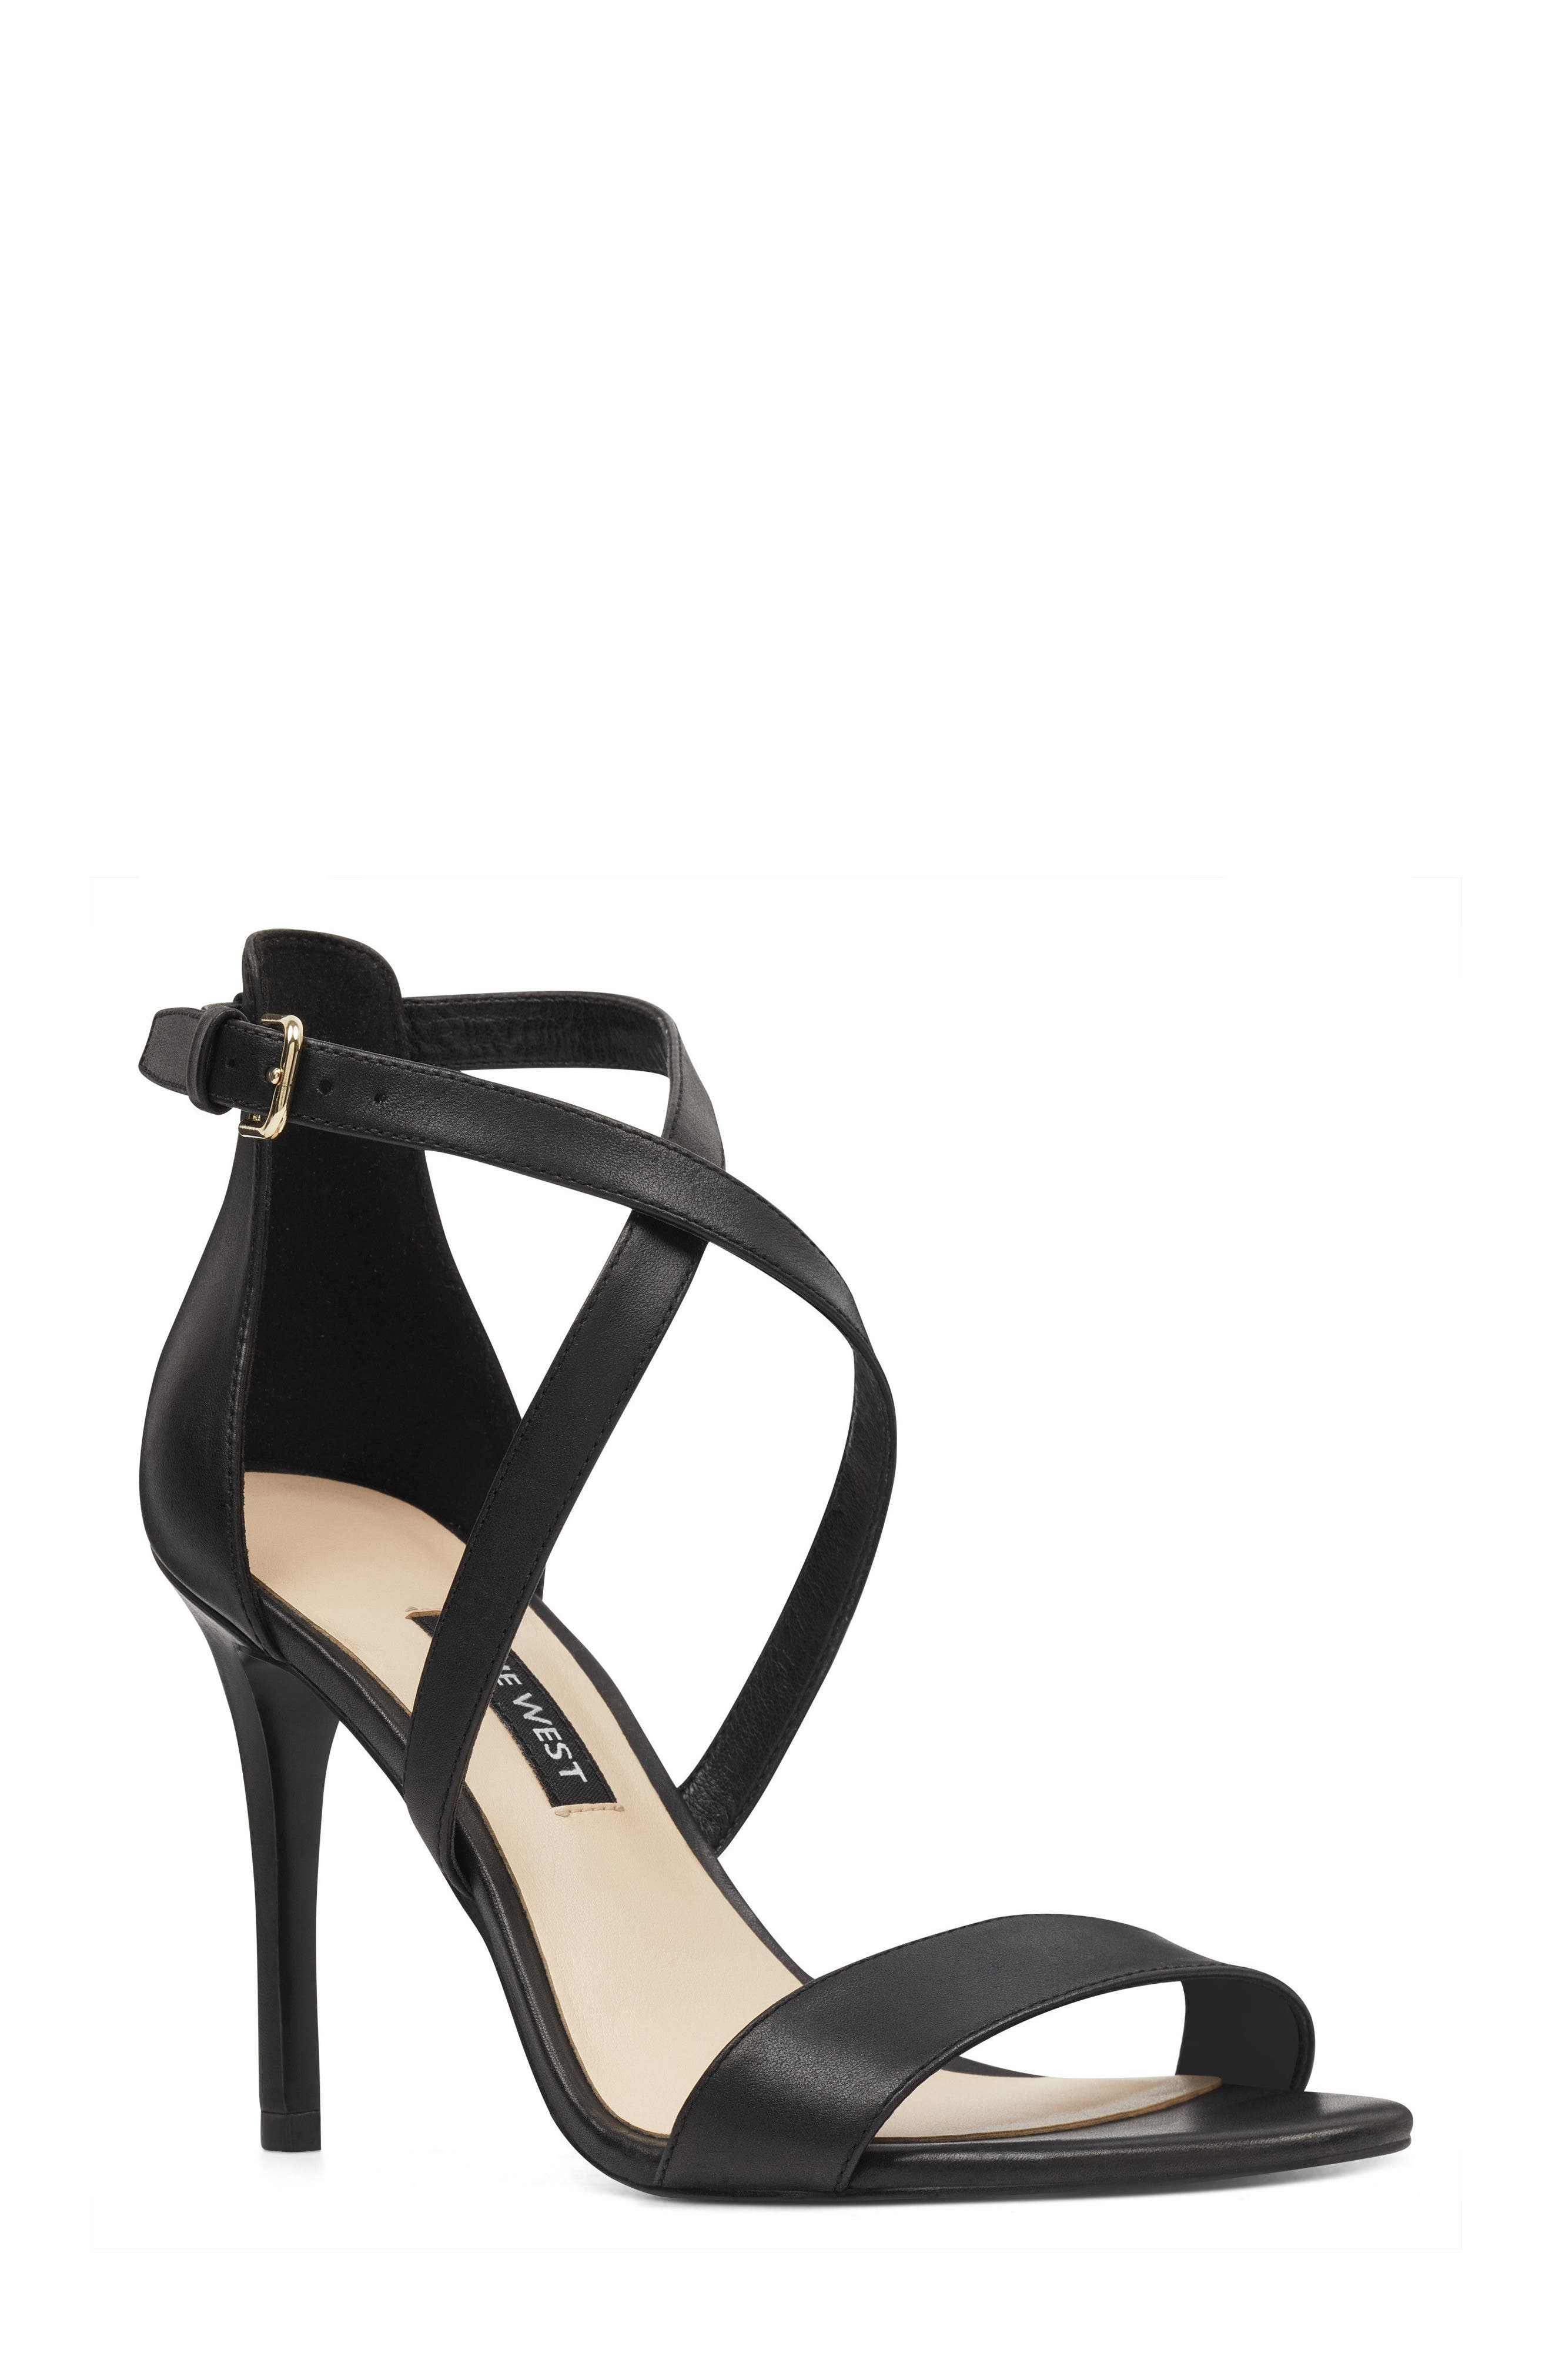 Mydebut Strappy Sandal,                             Main thumbnail 1, color,                             BLACK LEATHER